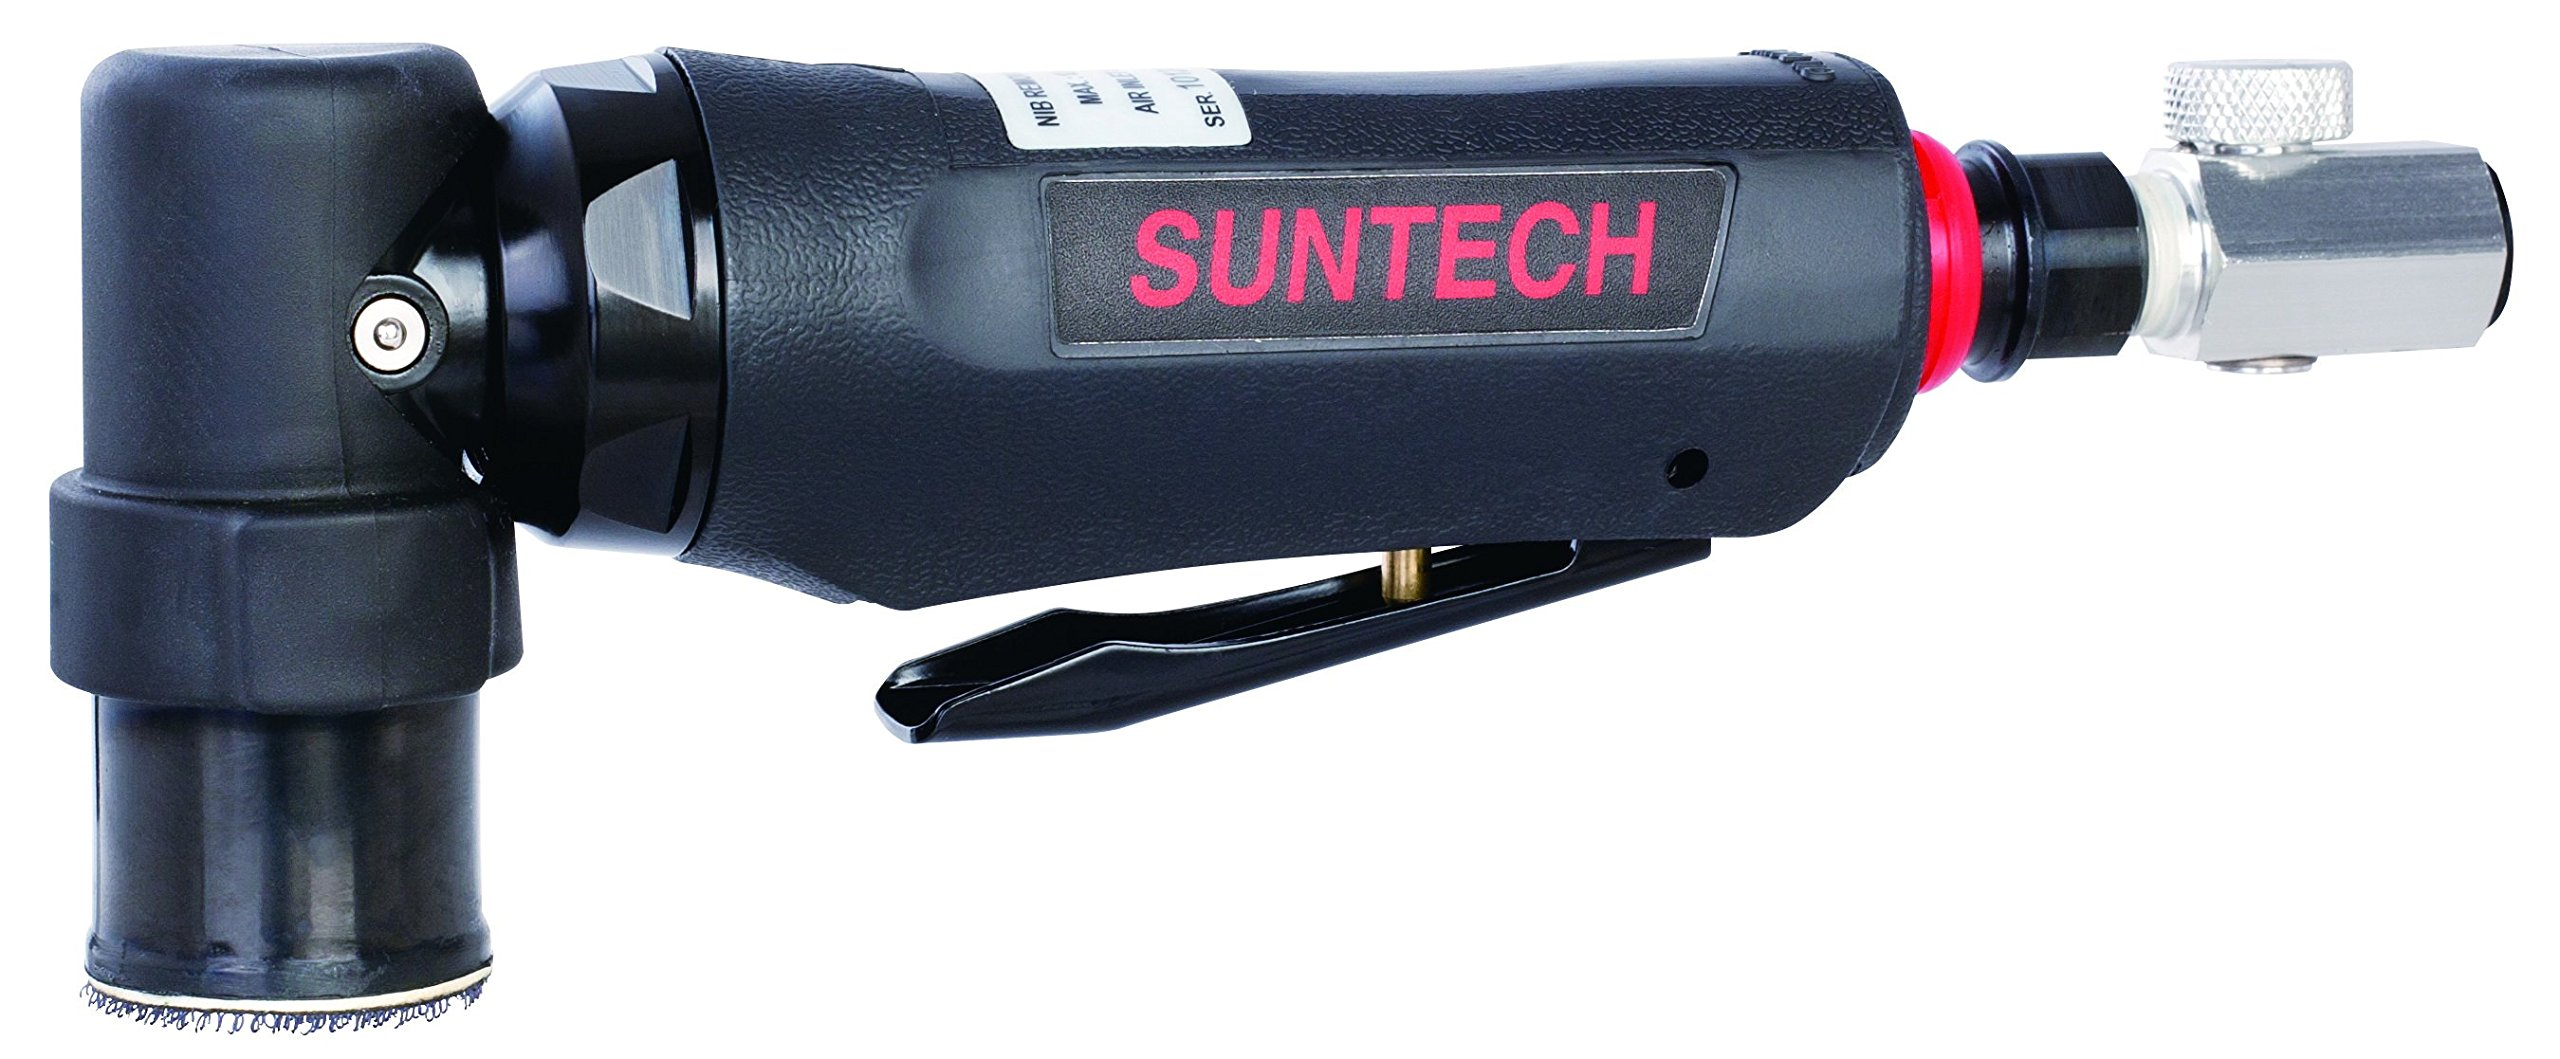 SUNTECH SM-60-5235 Sunmatch Power Angle Grinders, Black